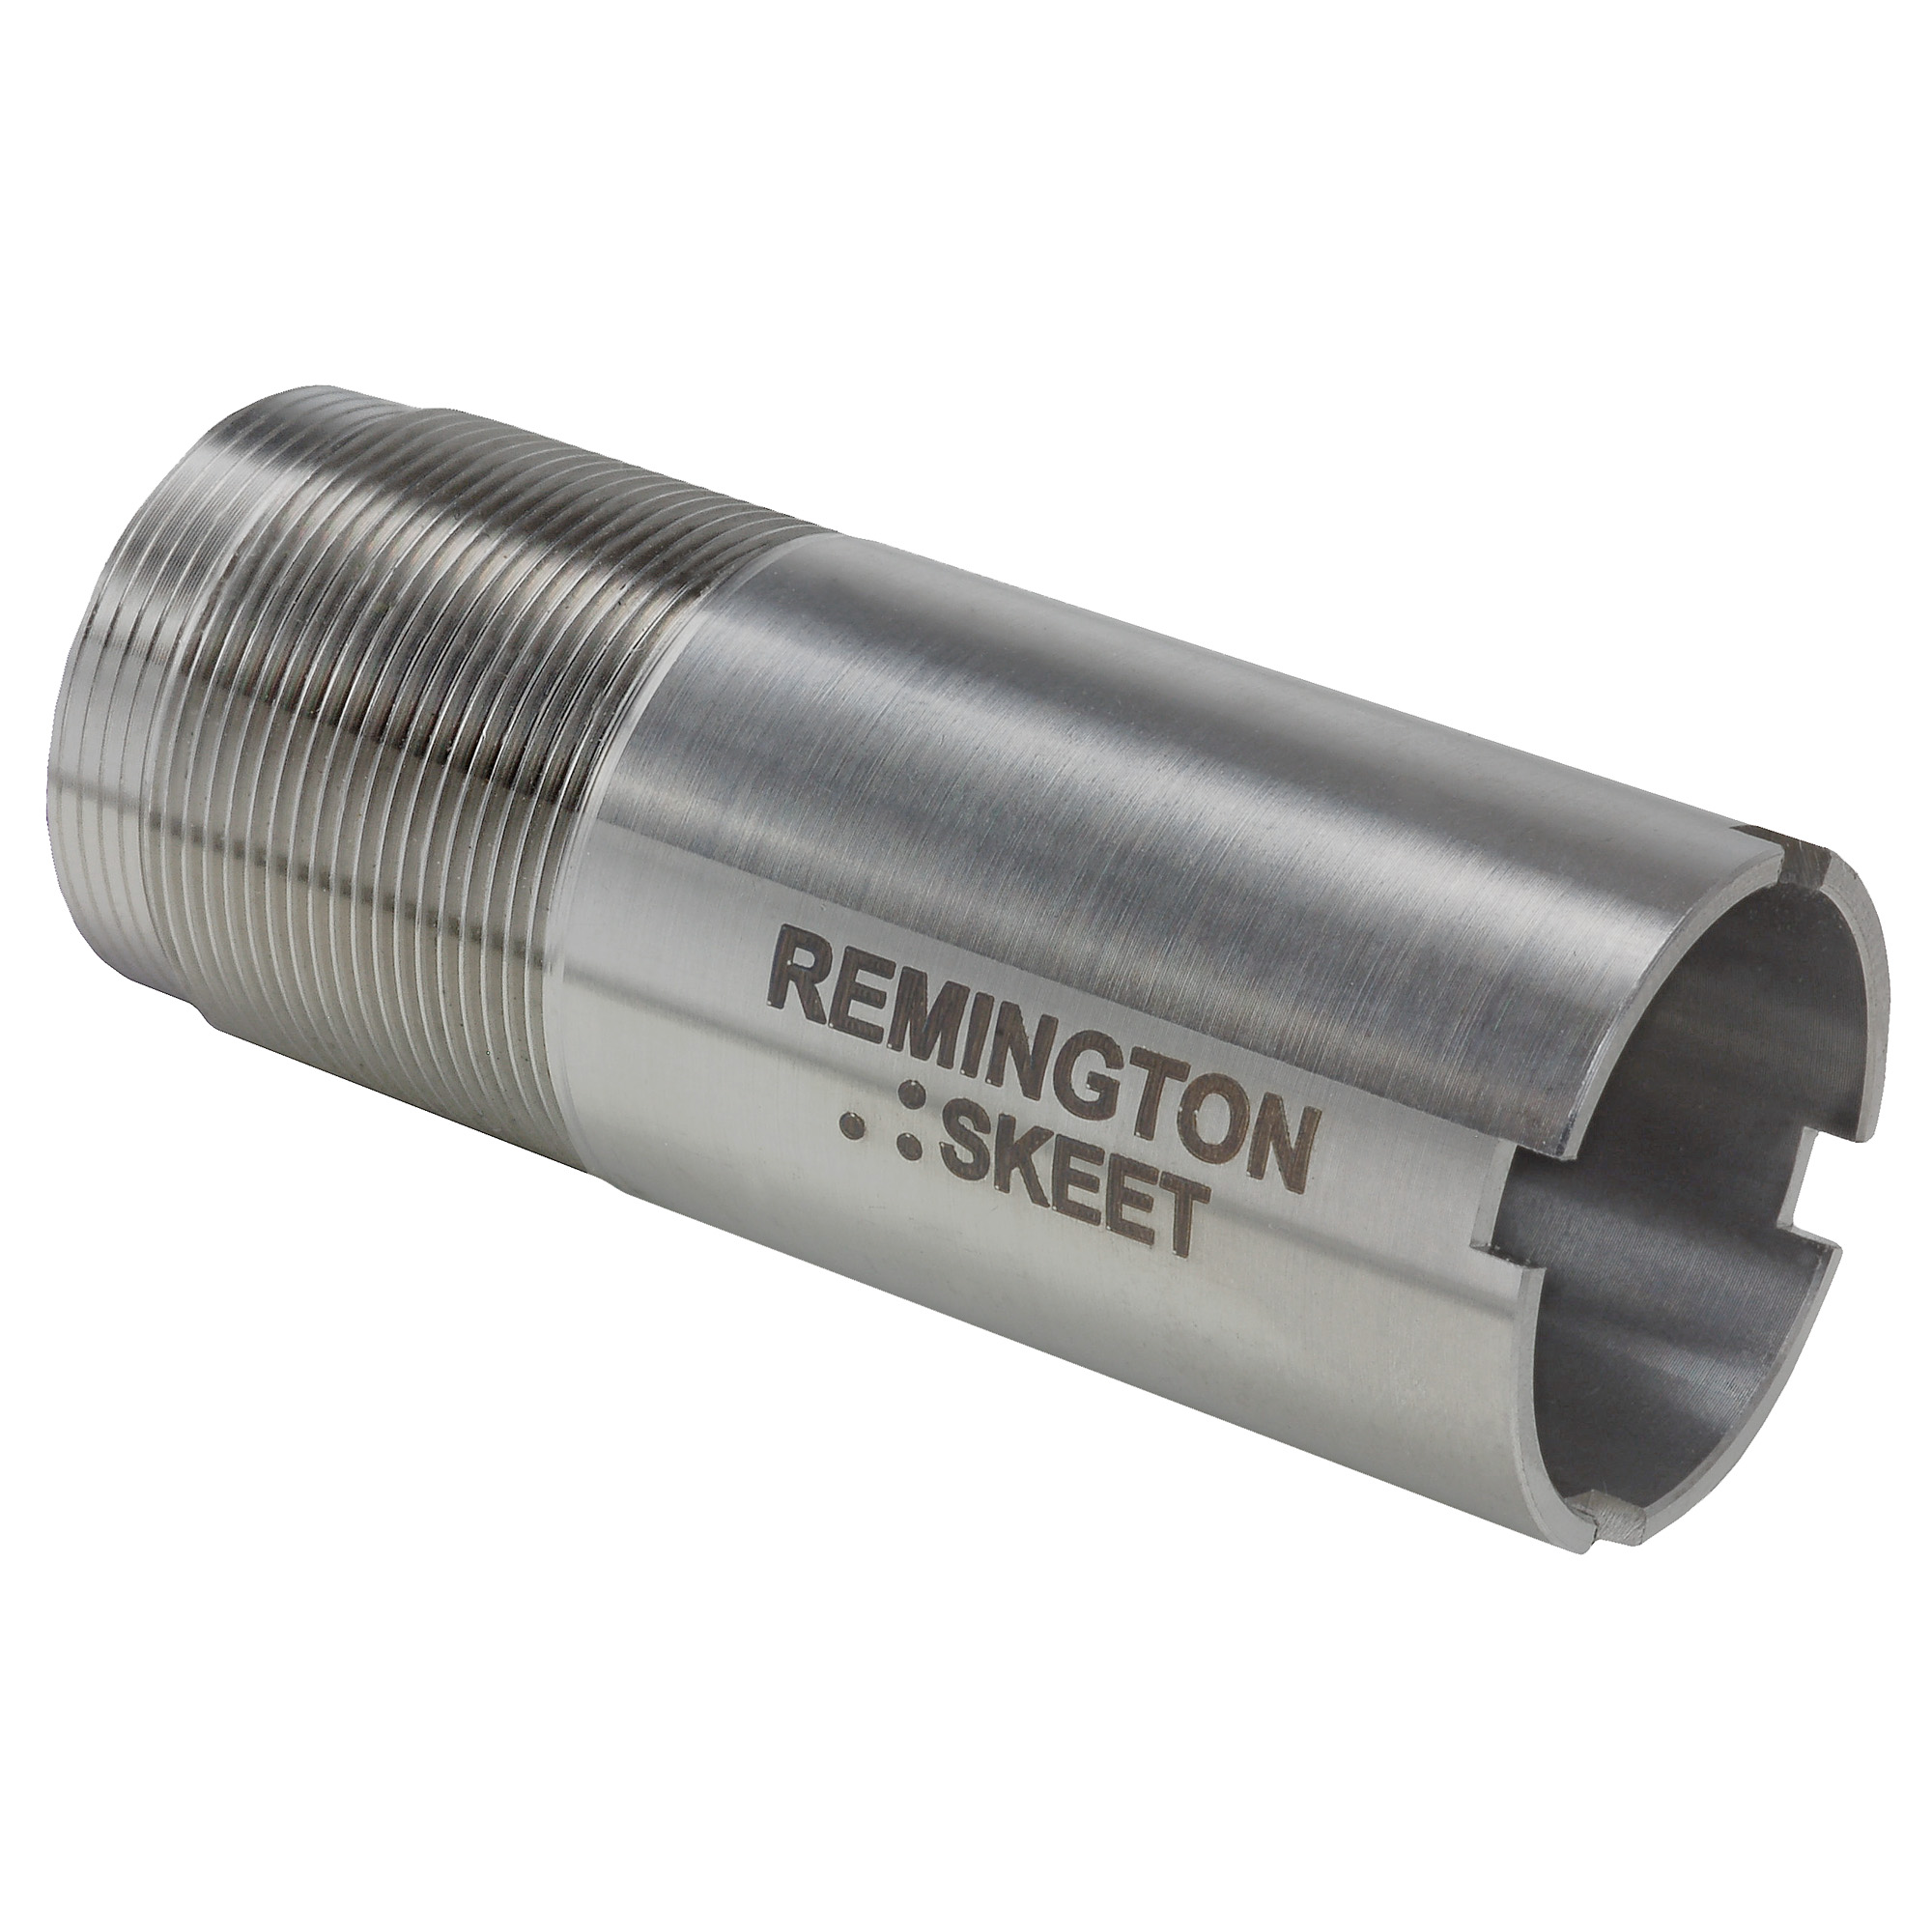 Remington Choke, Flush, 12 Gauge, Skeet, Blue Finish, For Steel Or Lea...